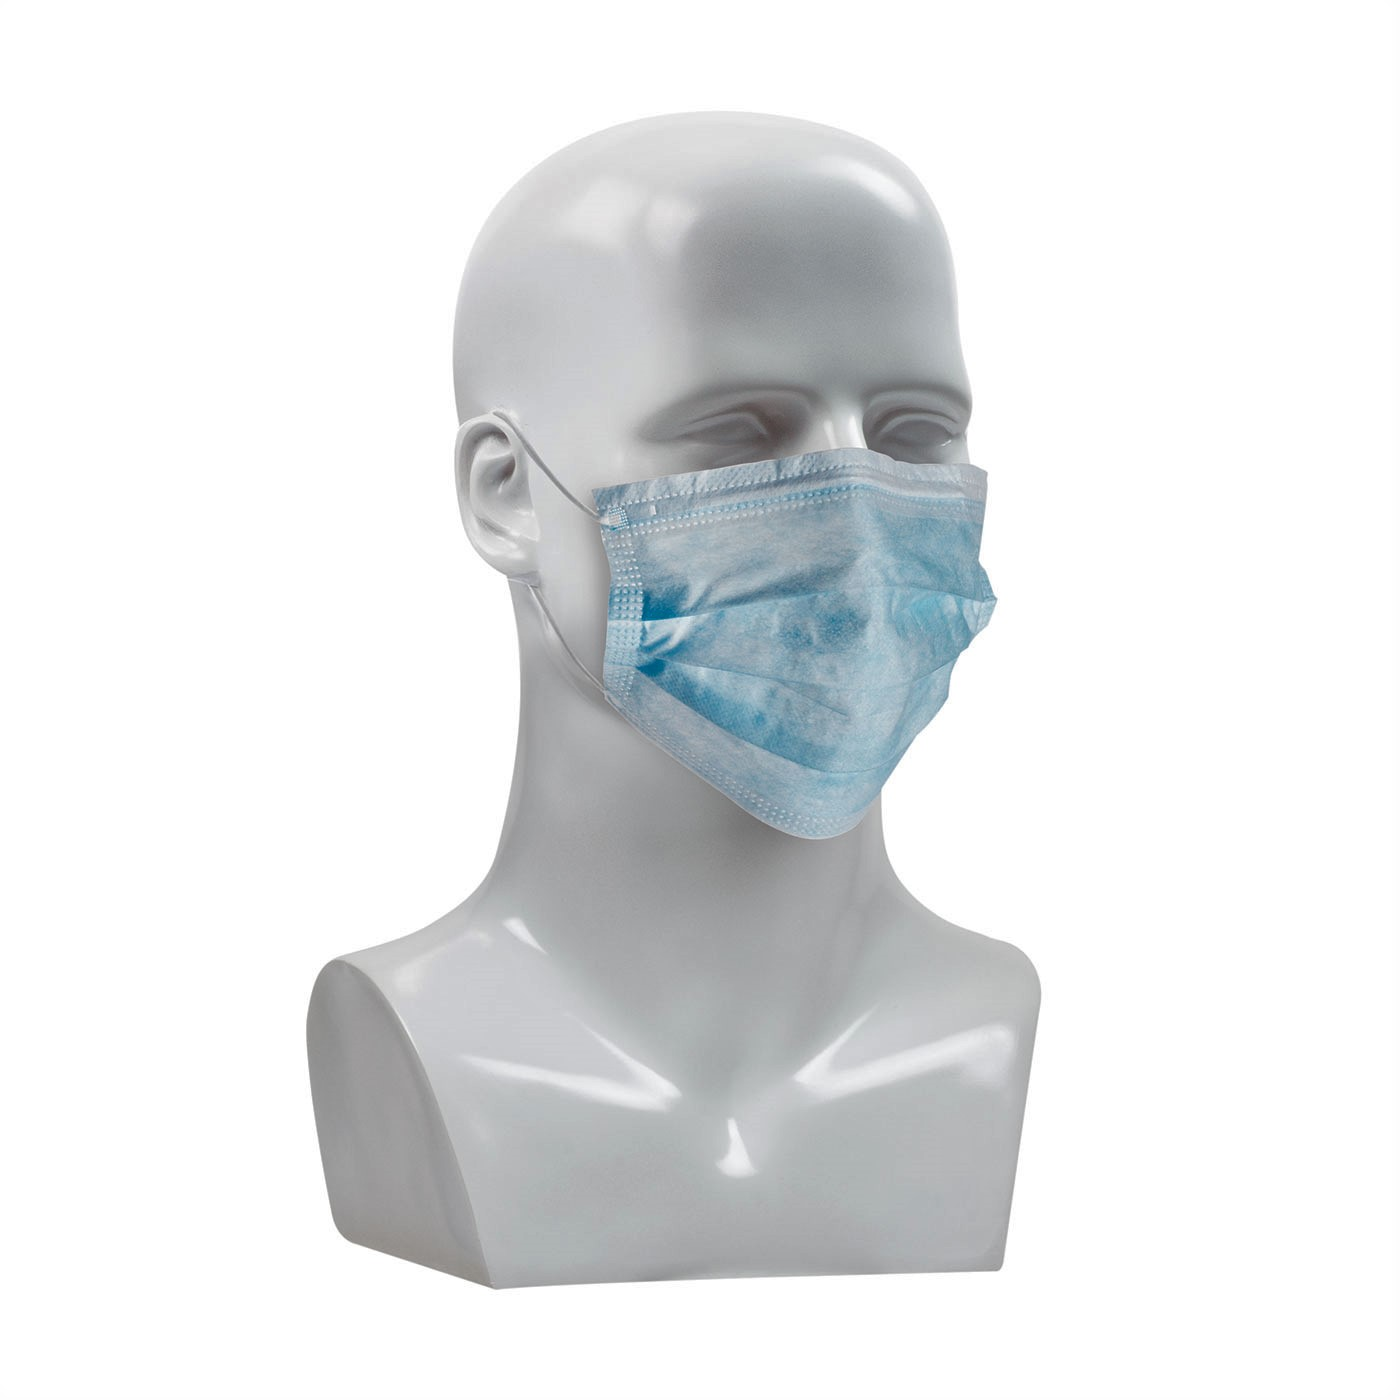 PIP 270-4000 Disposable Face Mask, Pack of 50